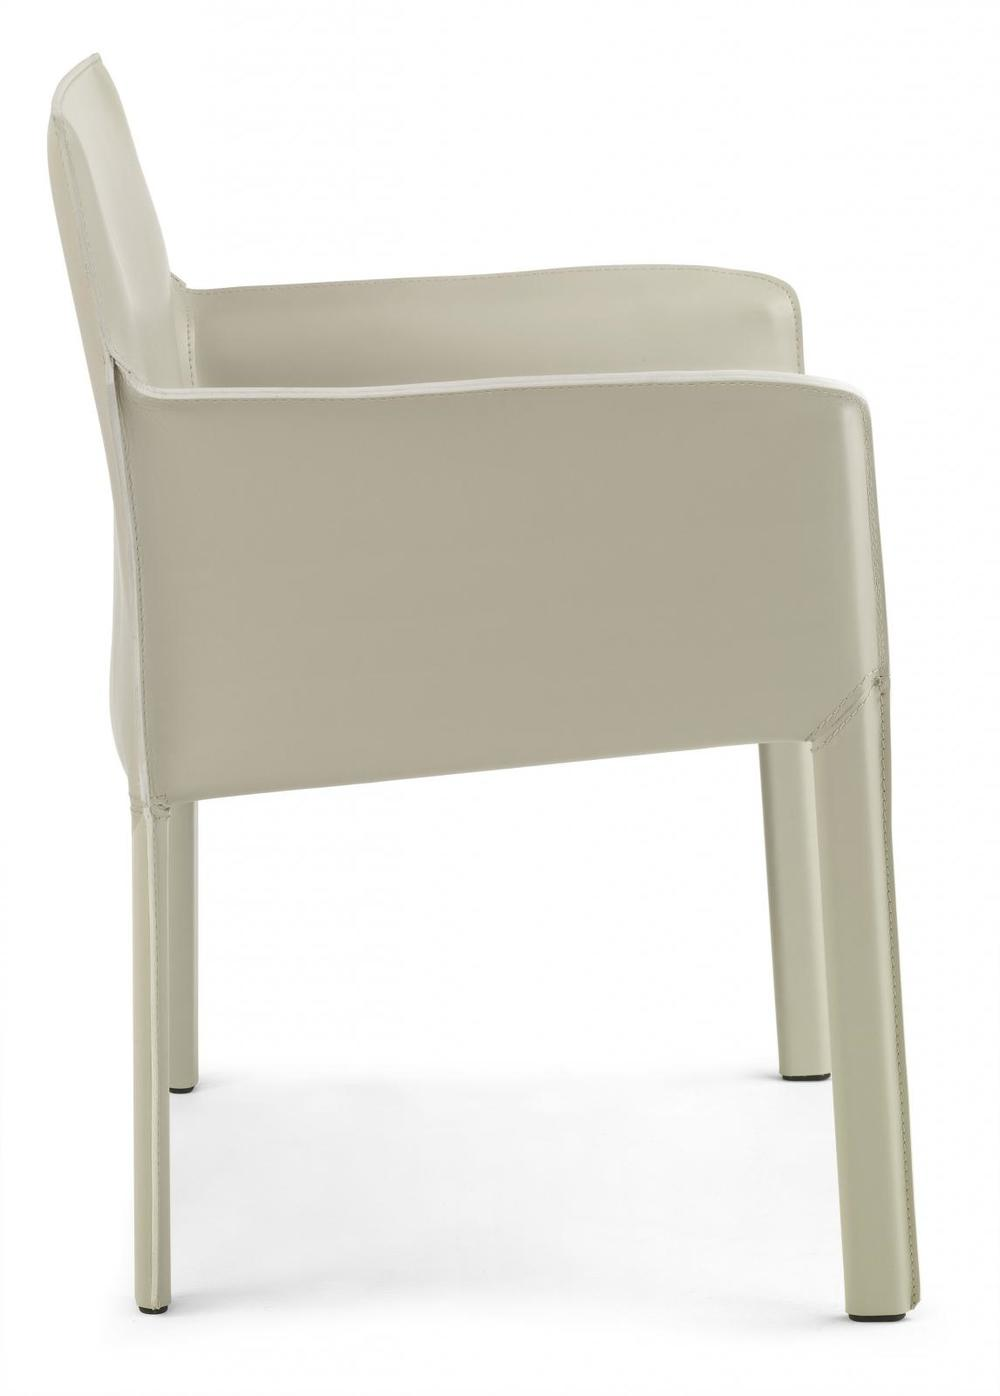 MDC 116 Modern Dining Chairs